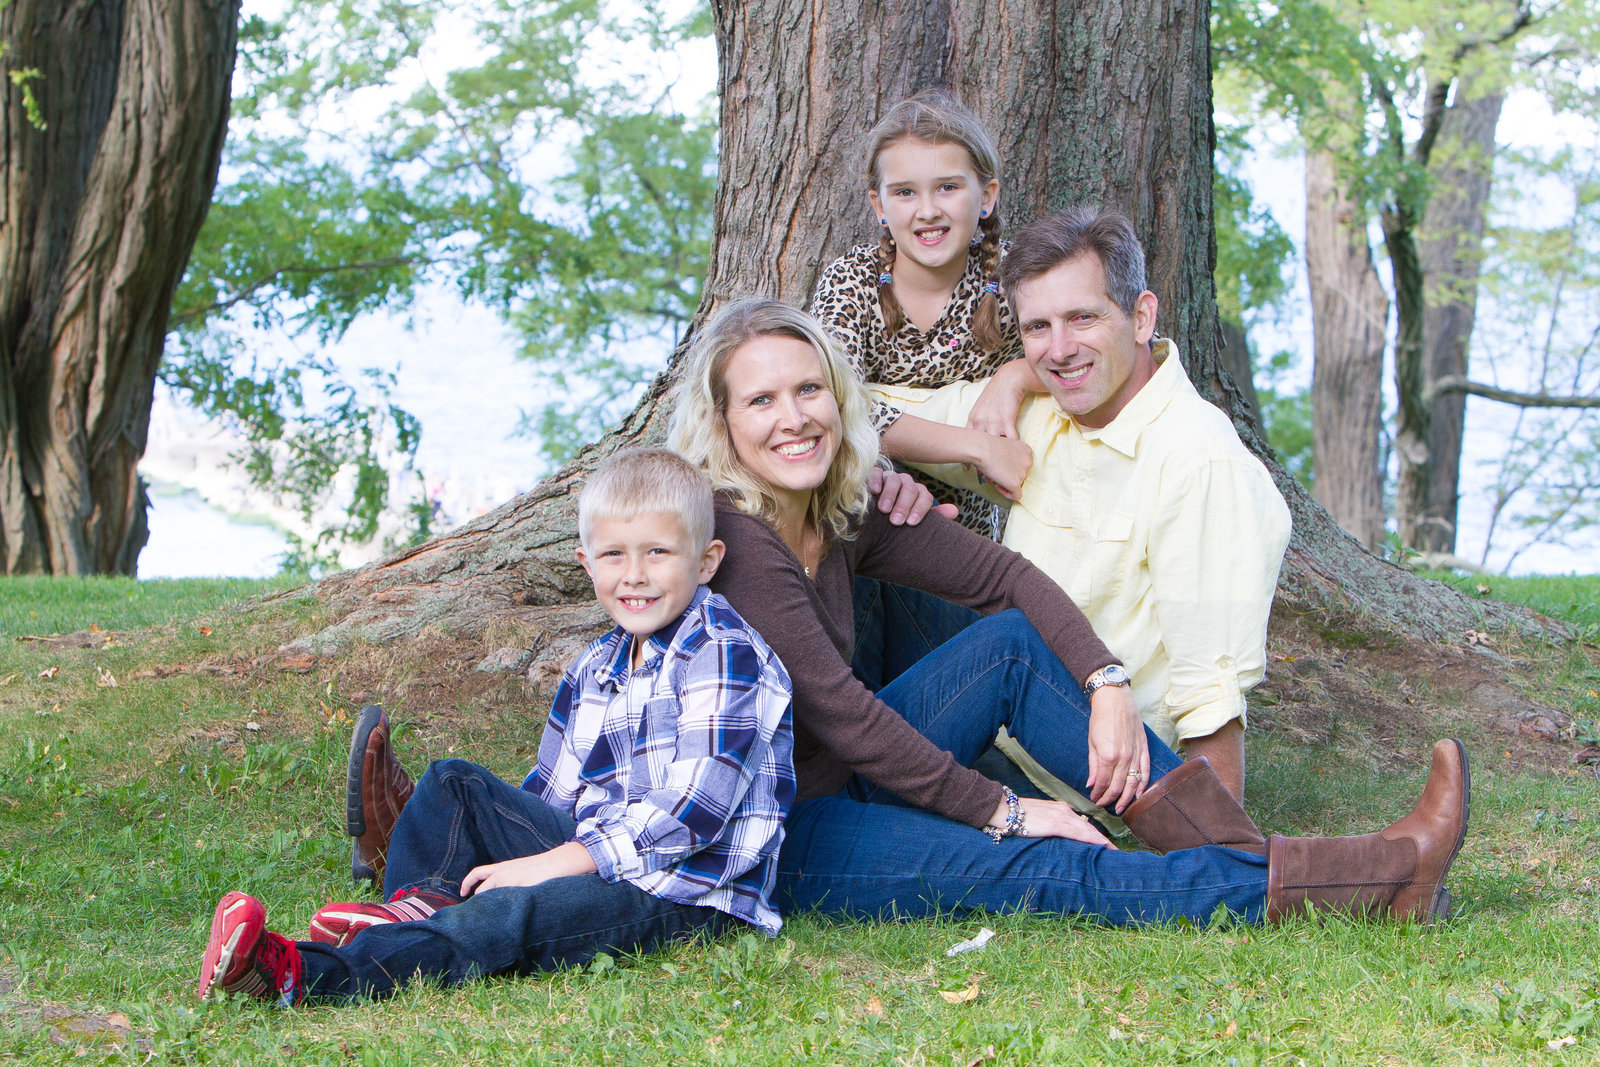 Famil portrait by tree in grass